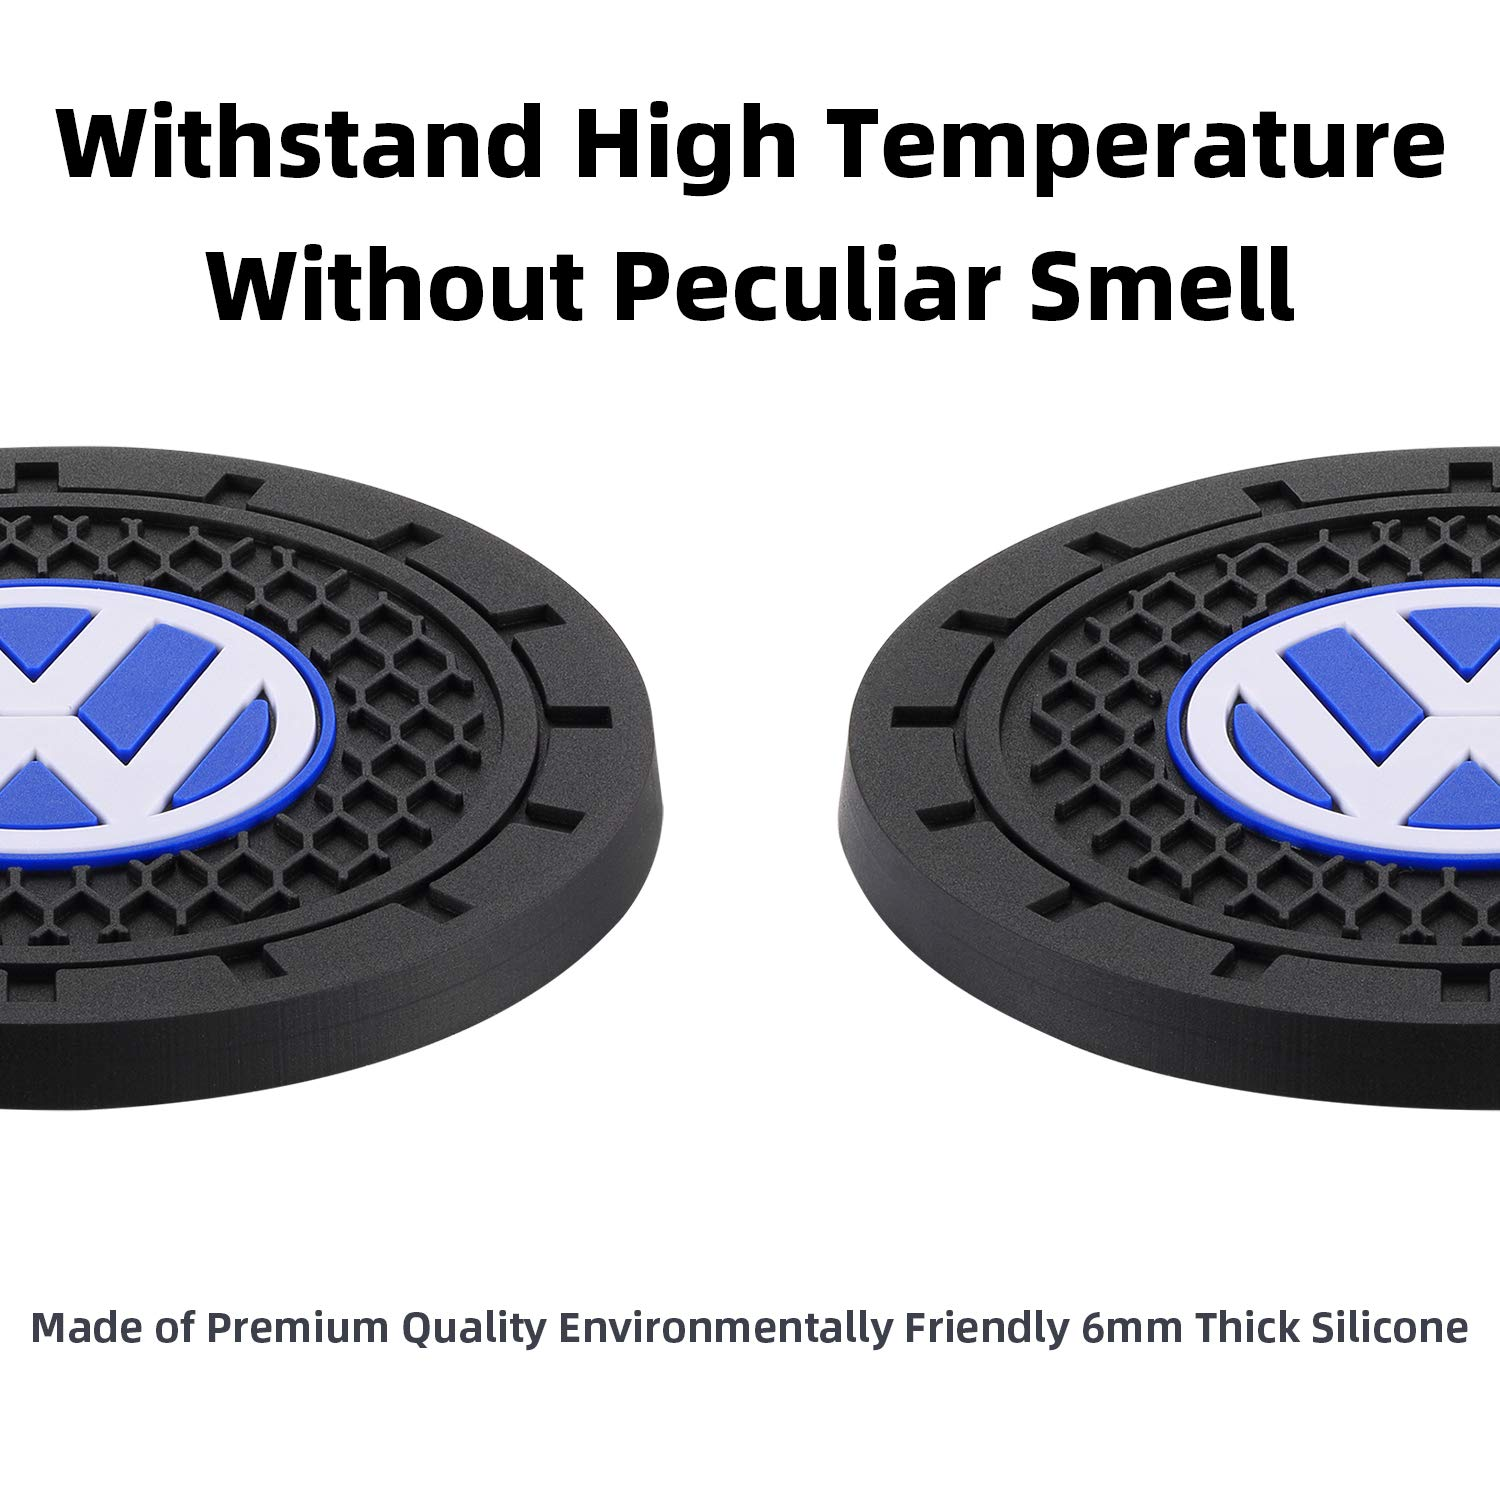 AOOOOP Car Interior Accessories for Acura Cup Holder Insert Coaster Silicone Anti Slip Cup Mat for Acura ILX TLX RLX RDX MDX NSX Set of 2, 2.75 Diameter